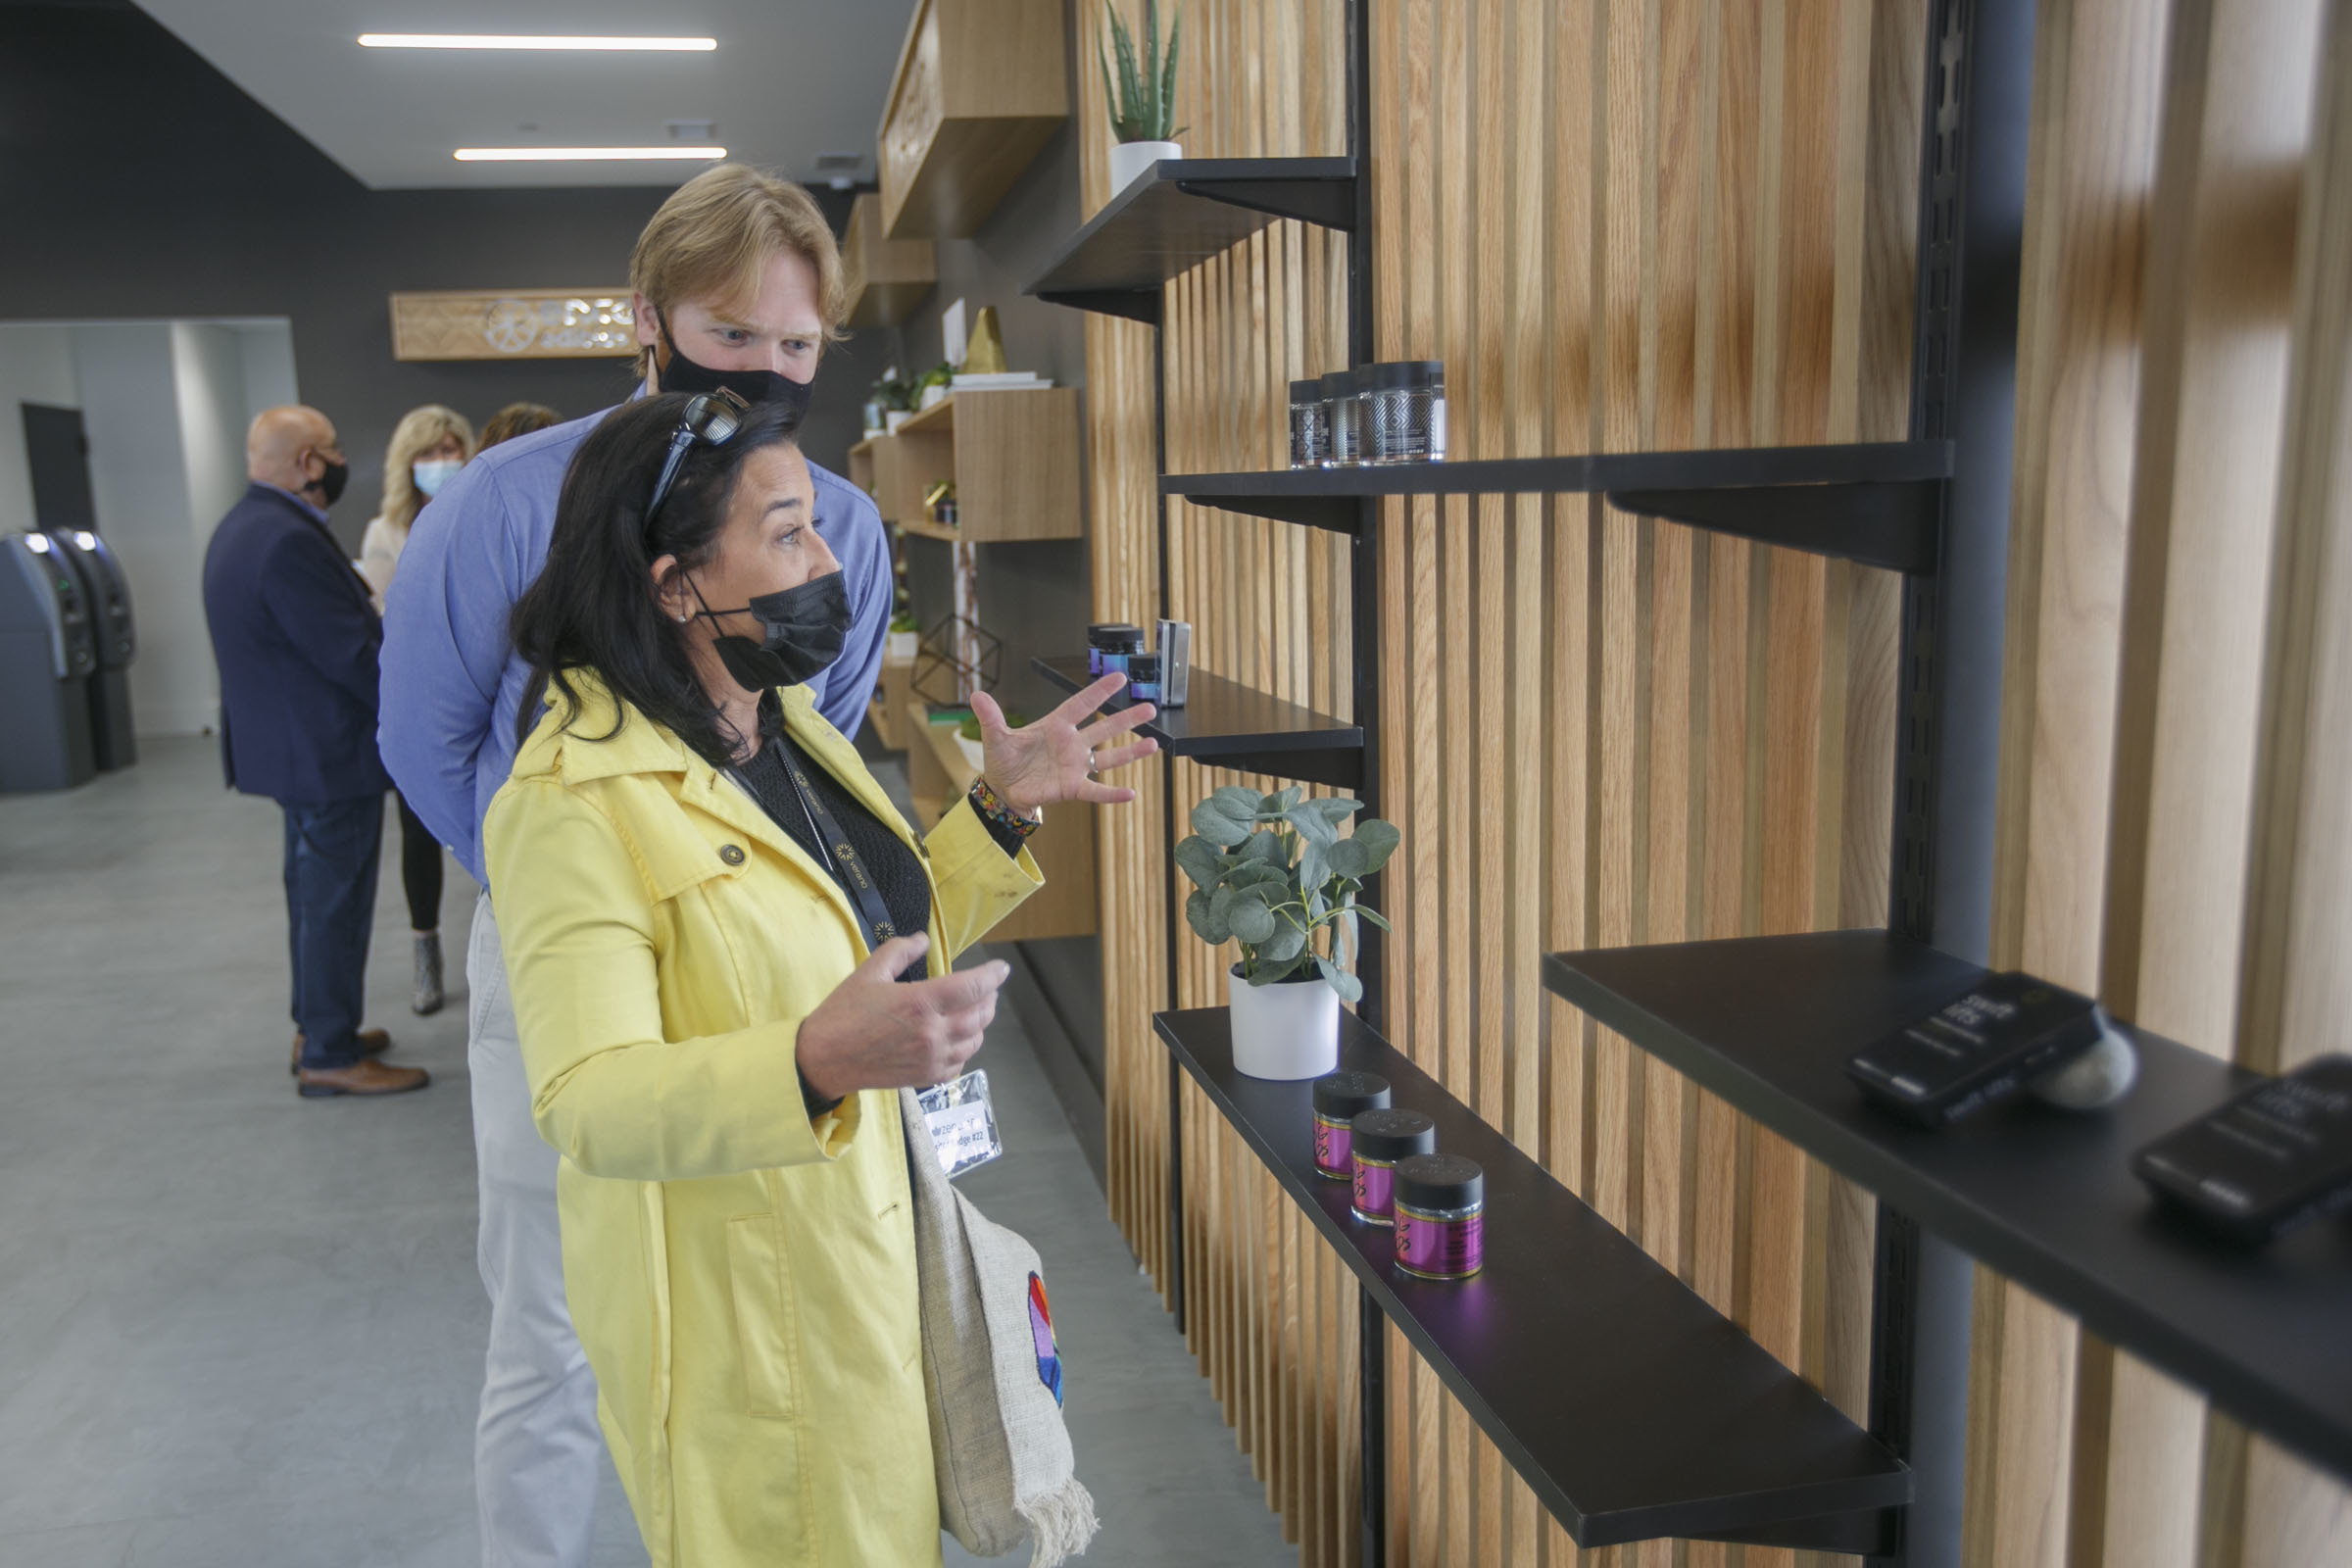 Sylvia Sylvia, (front) executive director of Asbury Park Chamber of Commerce, and Matthew C. Whelan, assistant director, tour Zen Leaf's cannabis dispensary.